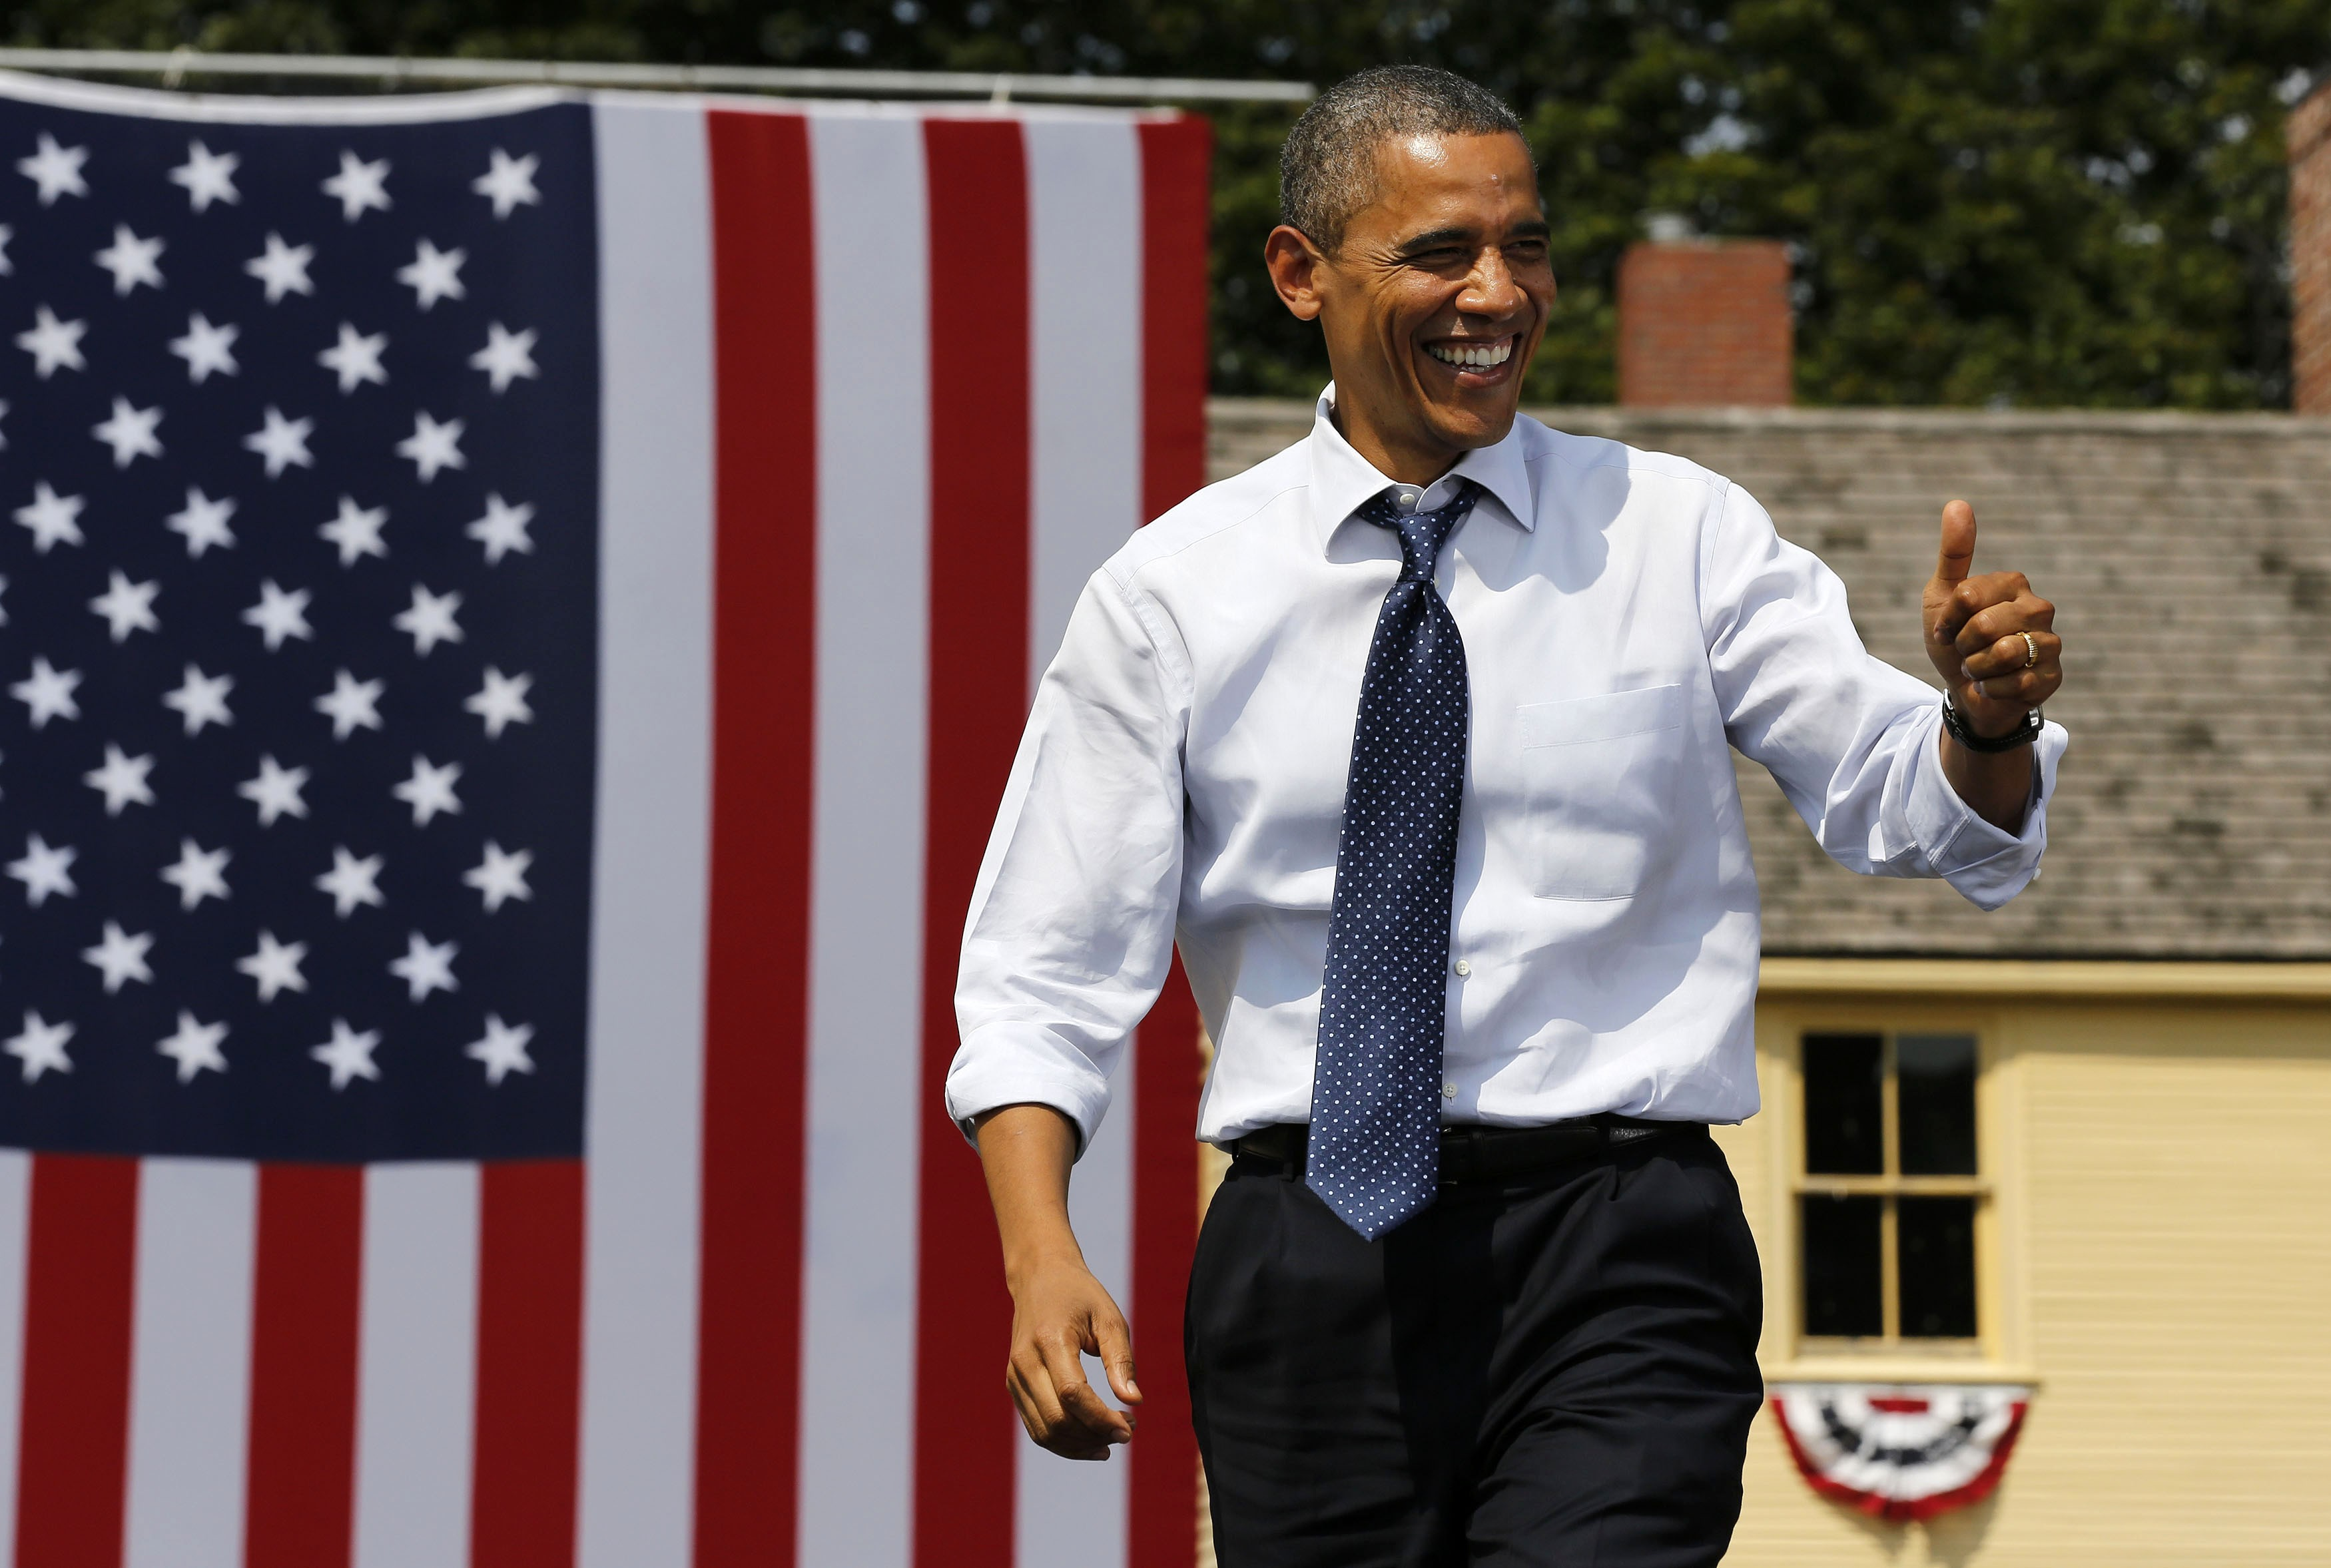 U.S. President Barack Obama campaigns at the Strawbery Banke Museum in New Hampshire. (Larry Downing/Reuters)